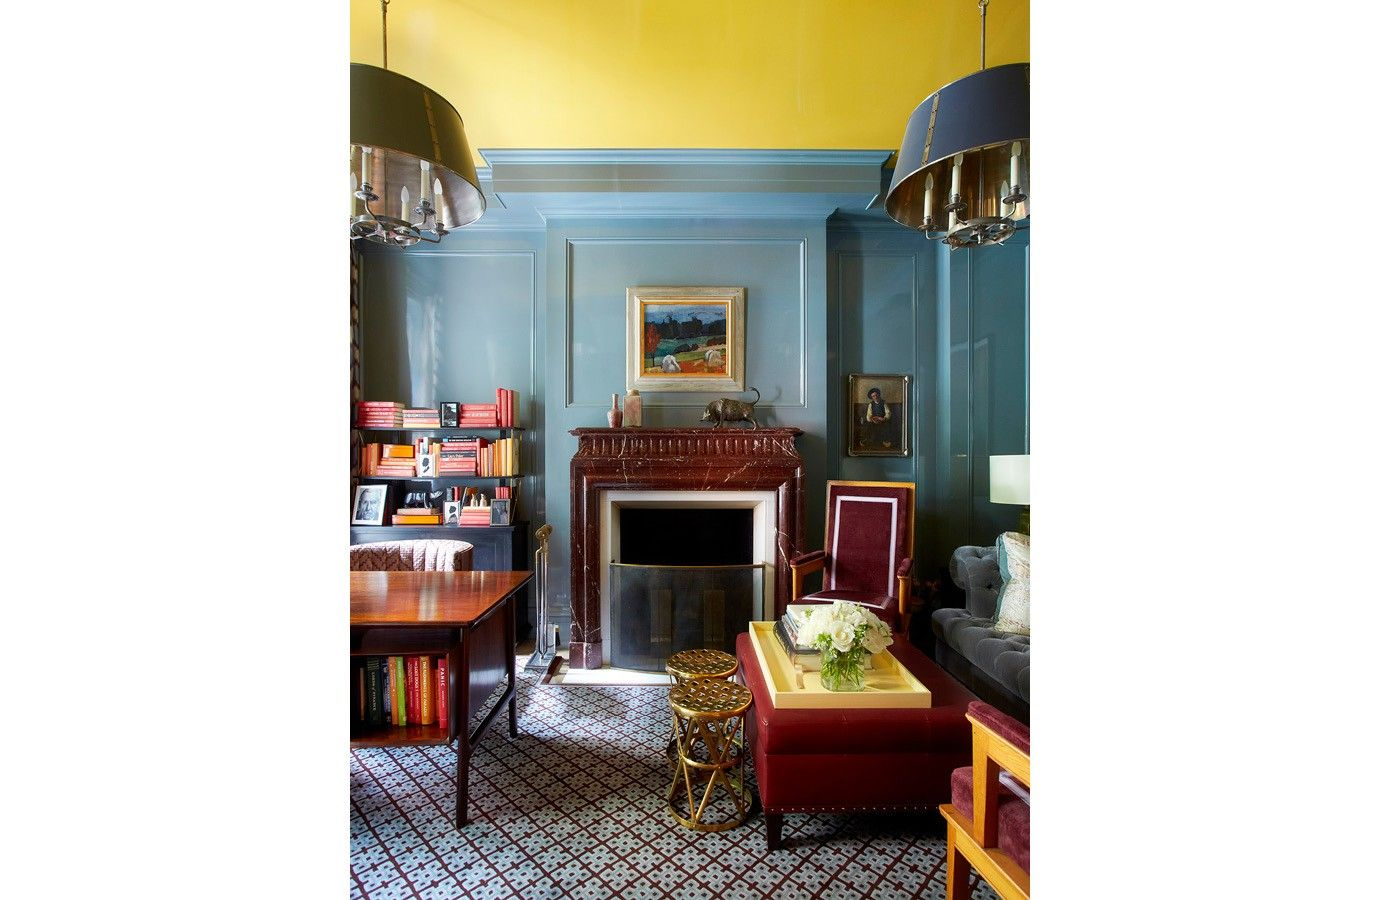 S.R. Gambrel | Lacquered walls, Yellow ceiling, Room colors